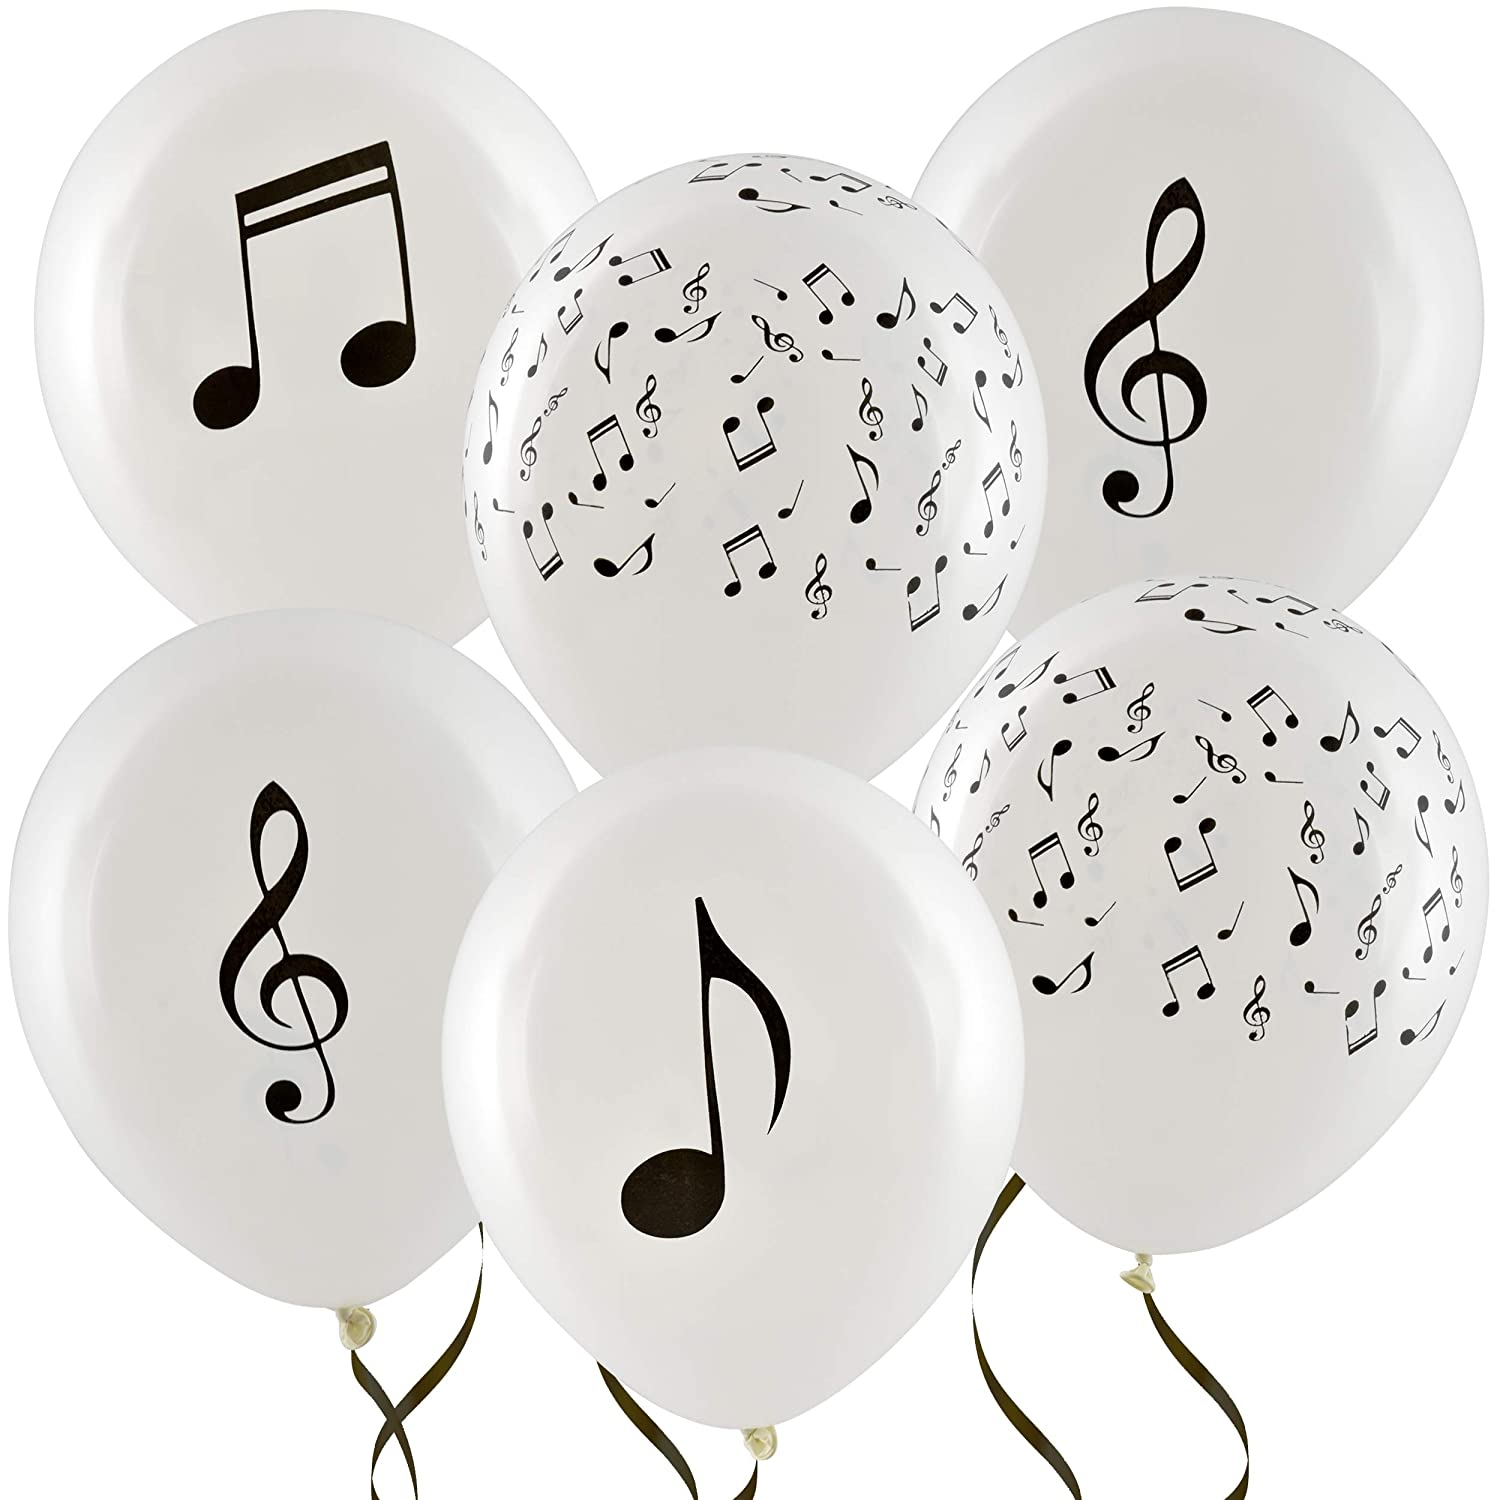 36 Musical Notes Balloons 12